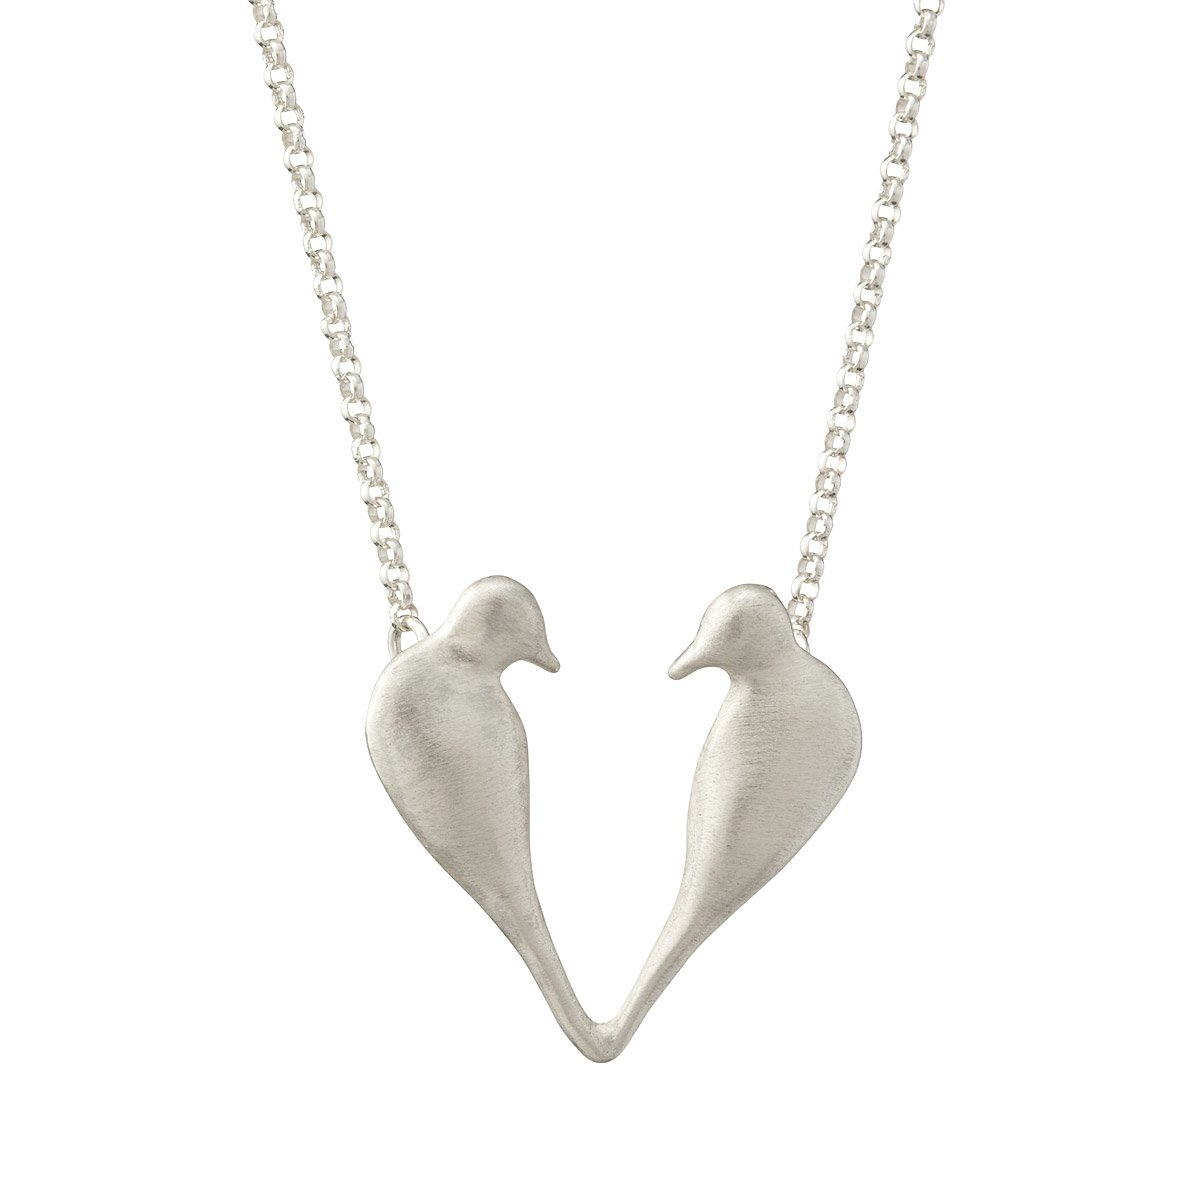 products birdandstone necklace bird stone love ecommerce